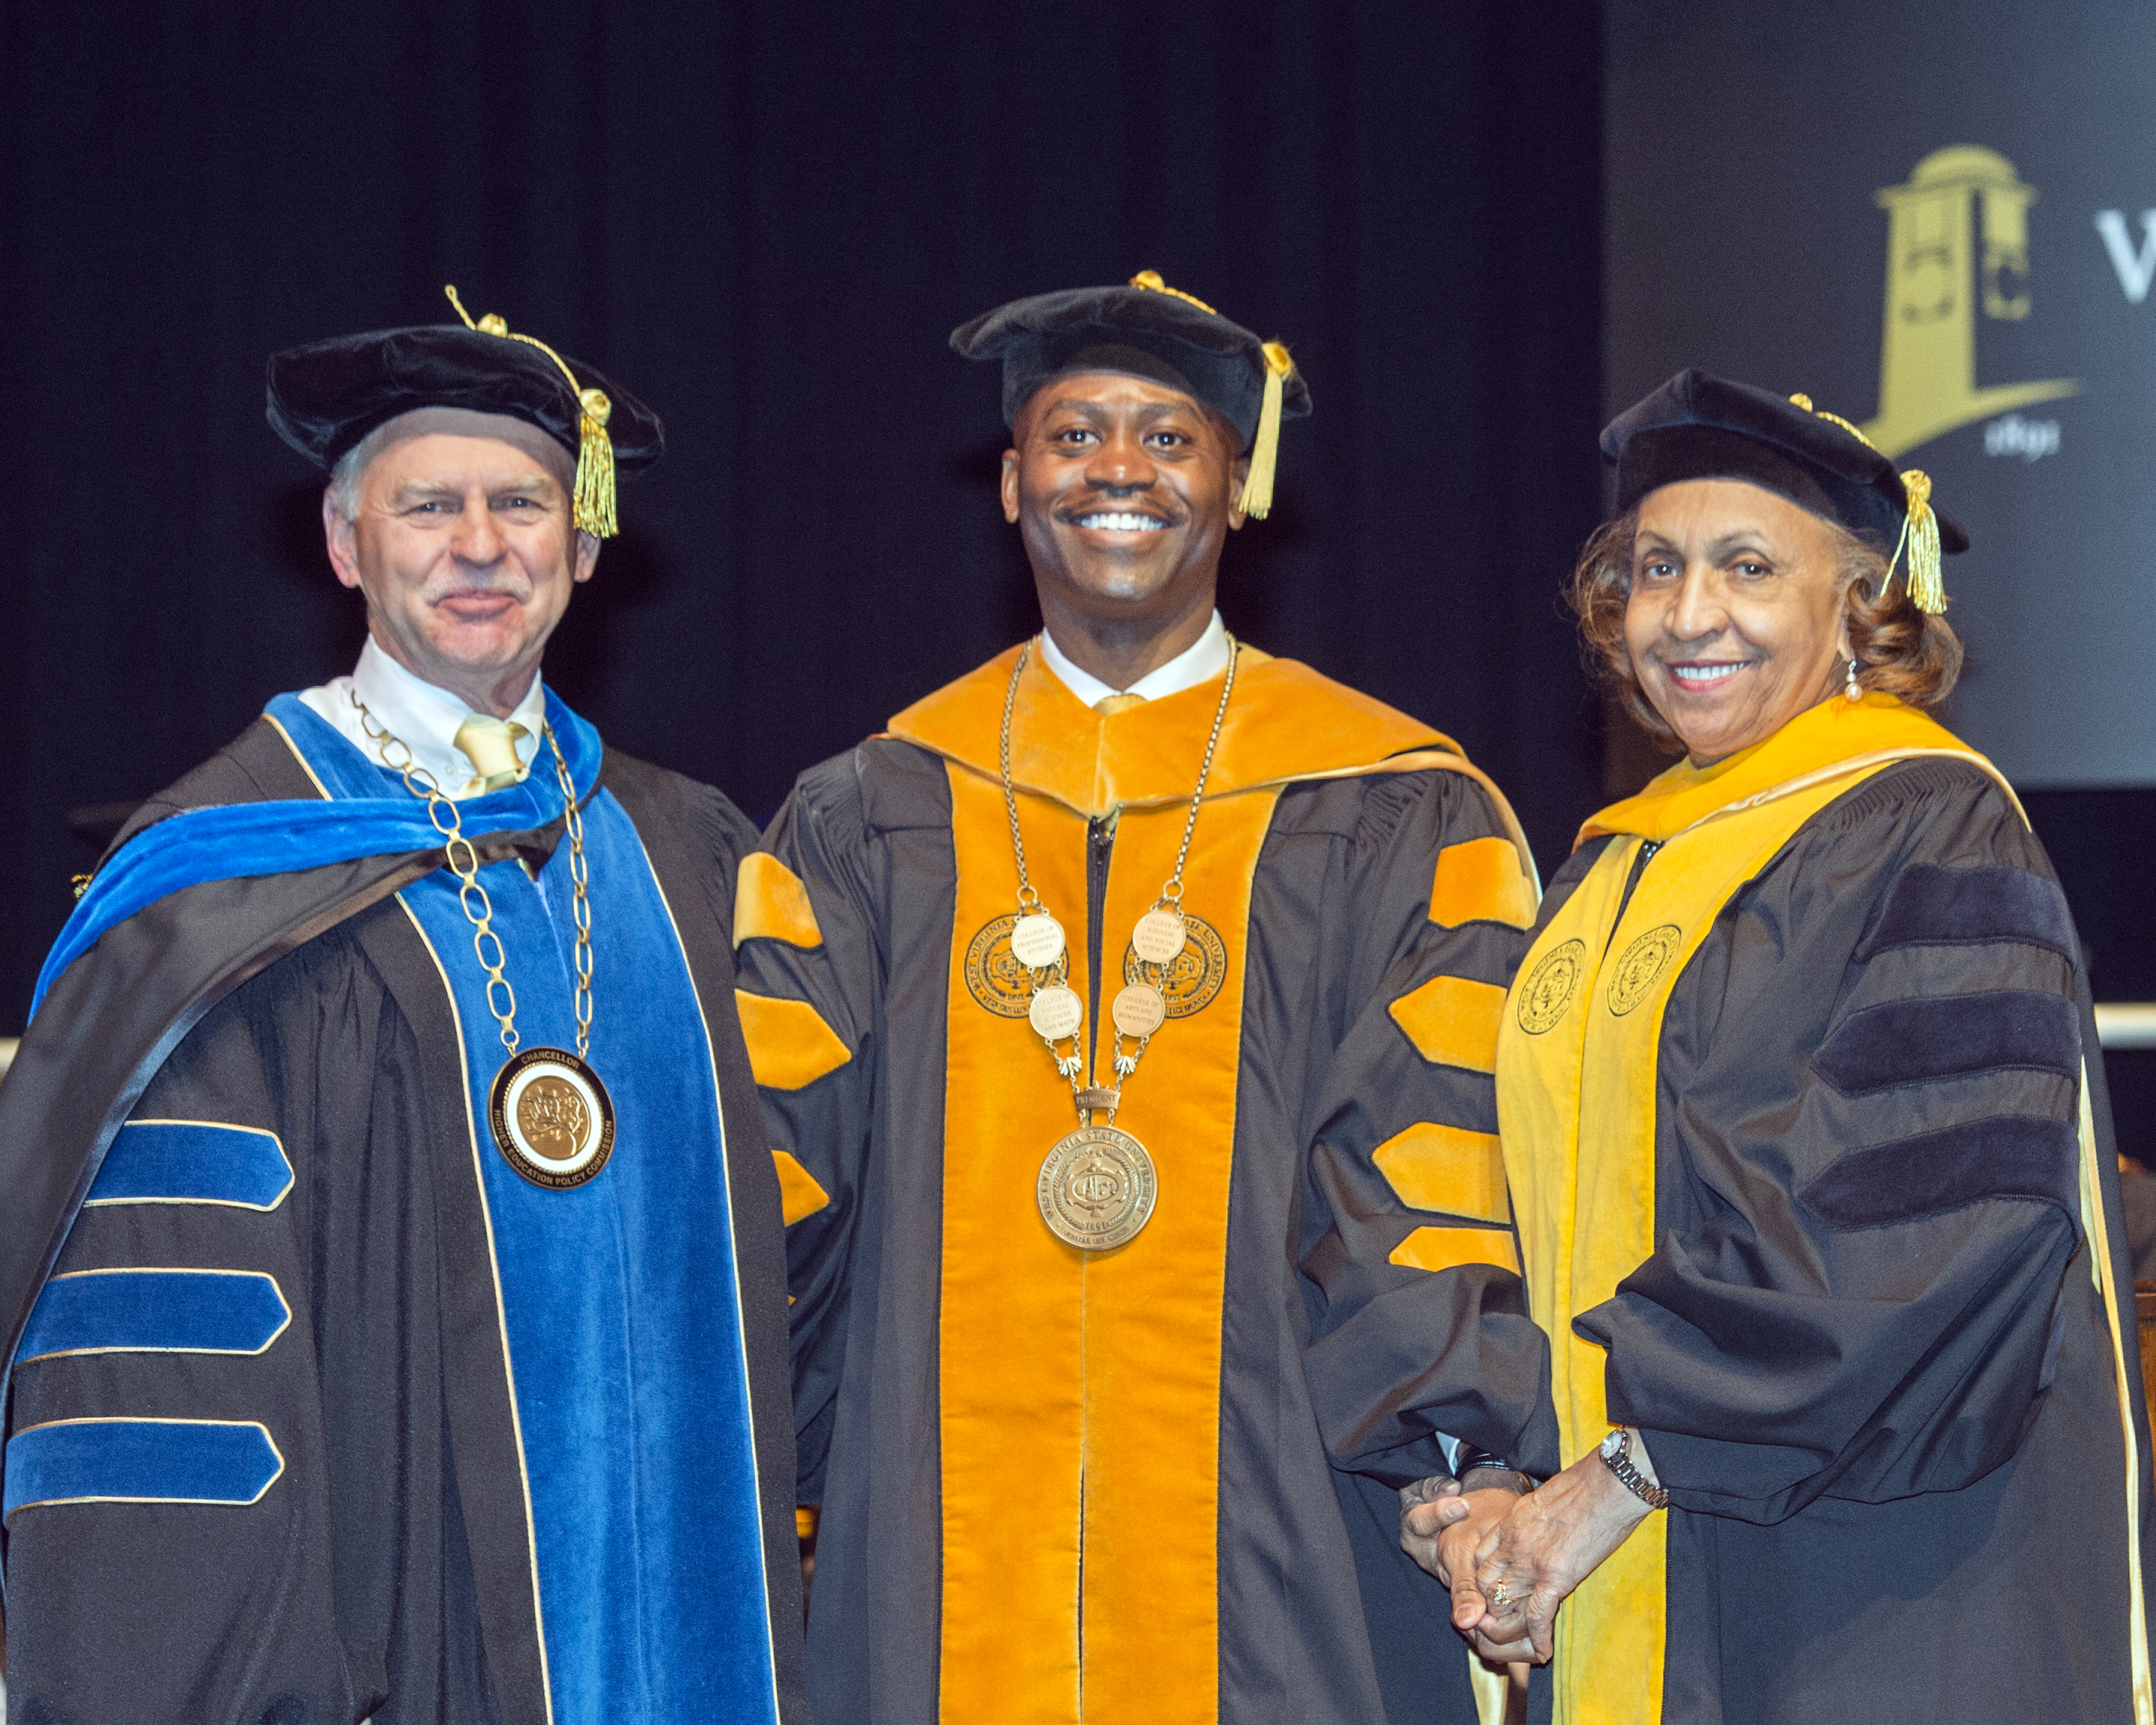 President Jenkins installed as the 11th President of WVSU